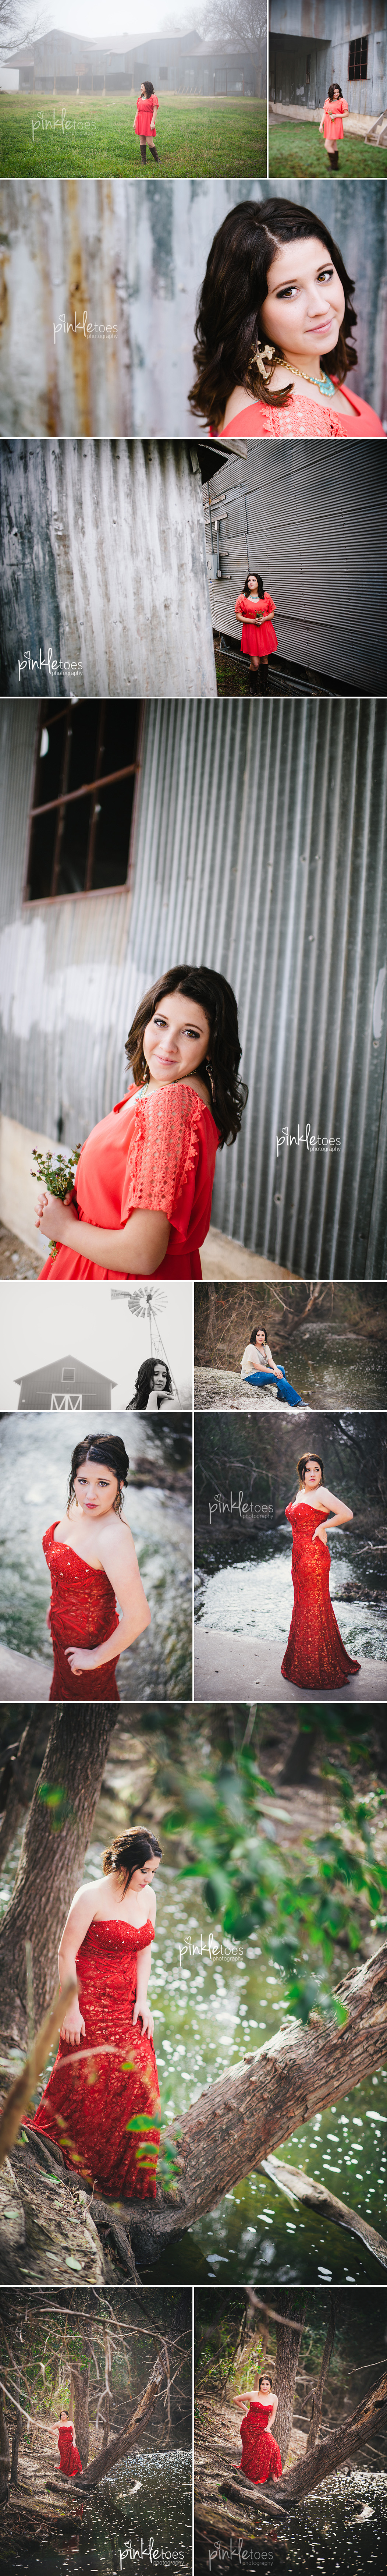 hr-austin-vintage-rustic-natural-barn-fog-wildflower-creek-water-senior-portraits